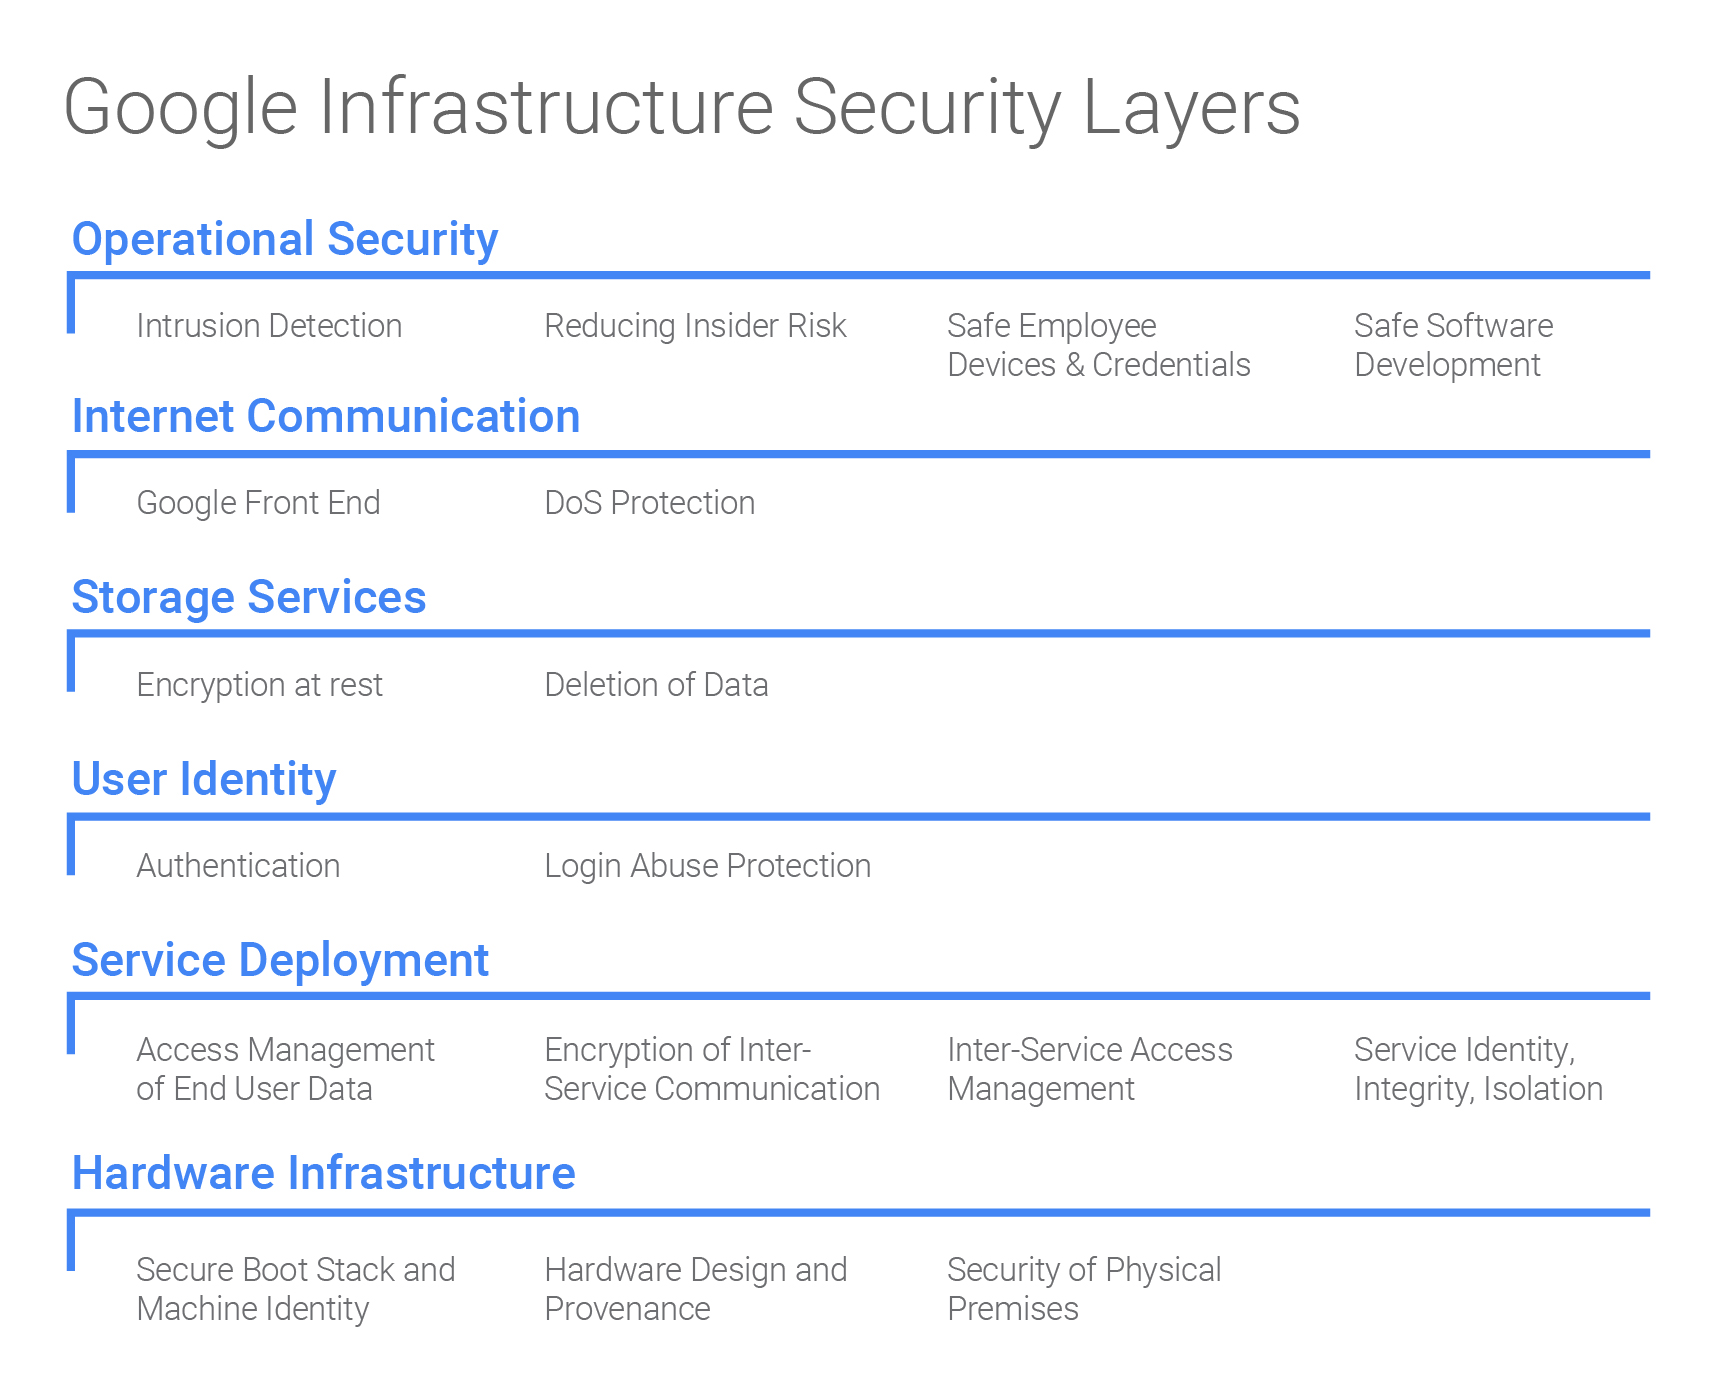 Security layers include operational security, internet communication, storage services, user identity, service deployment, and hardware infrastructure.